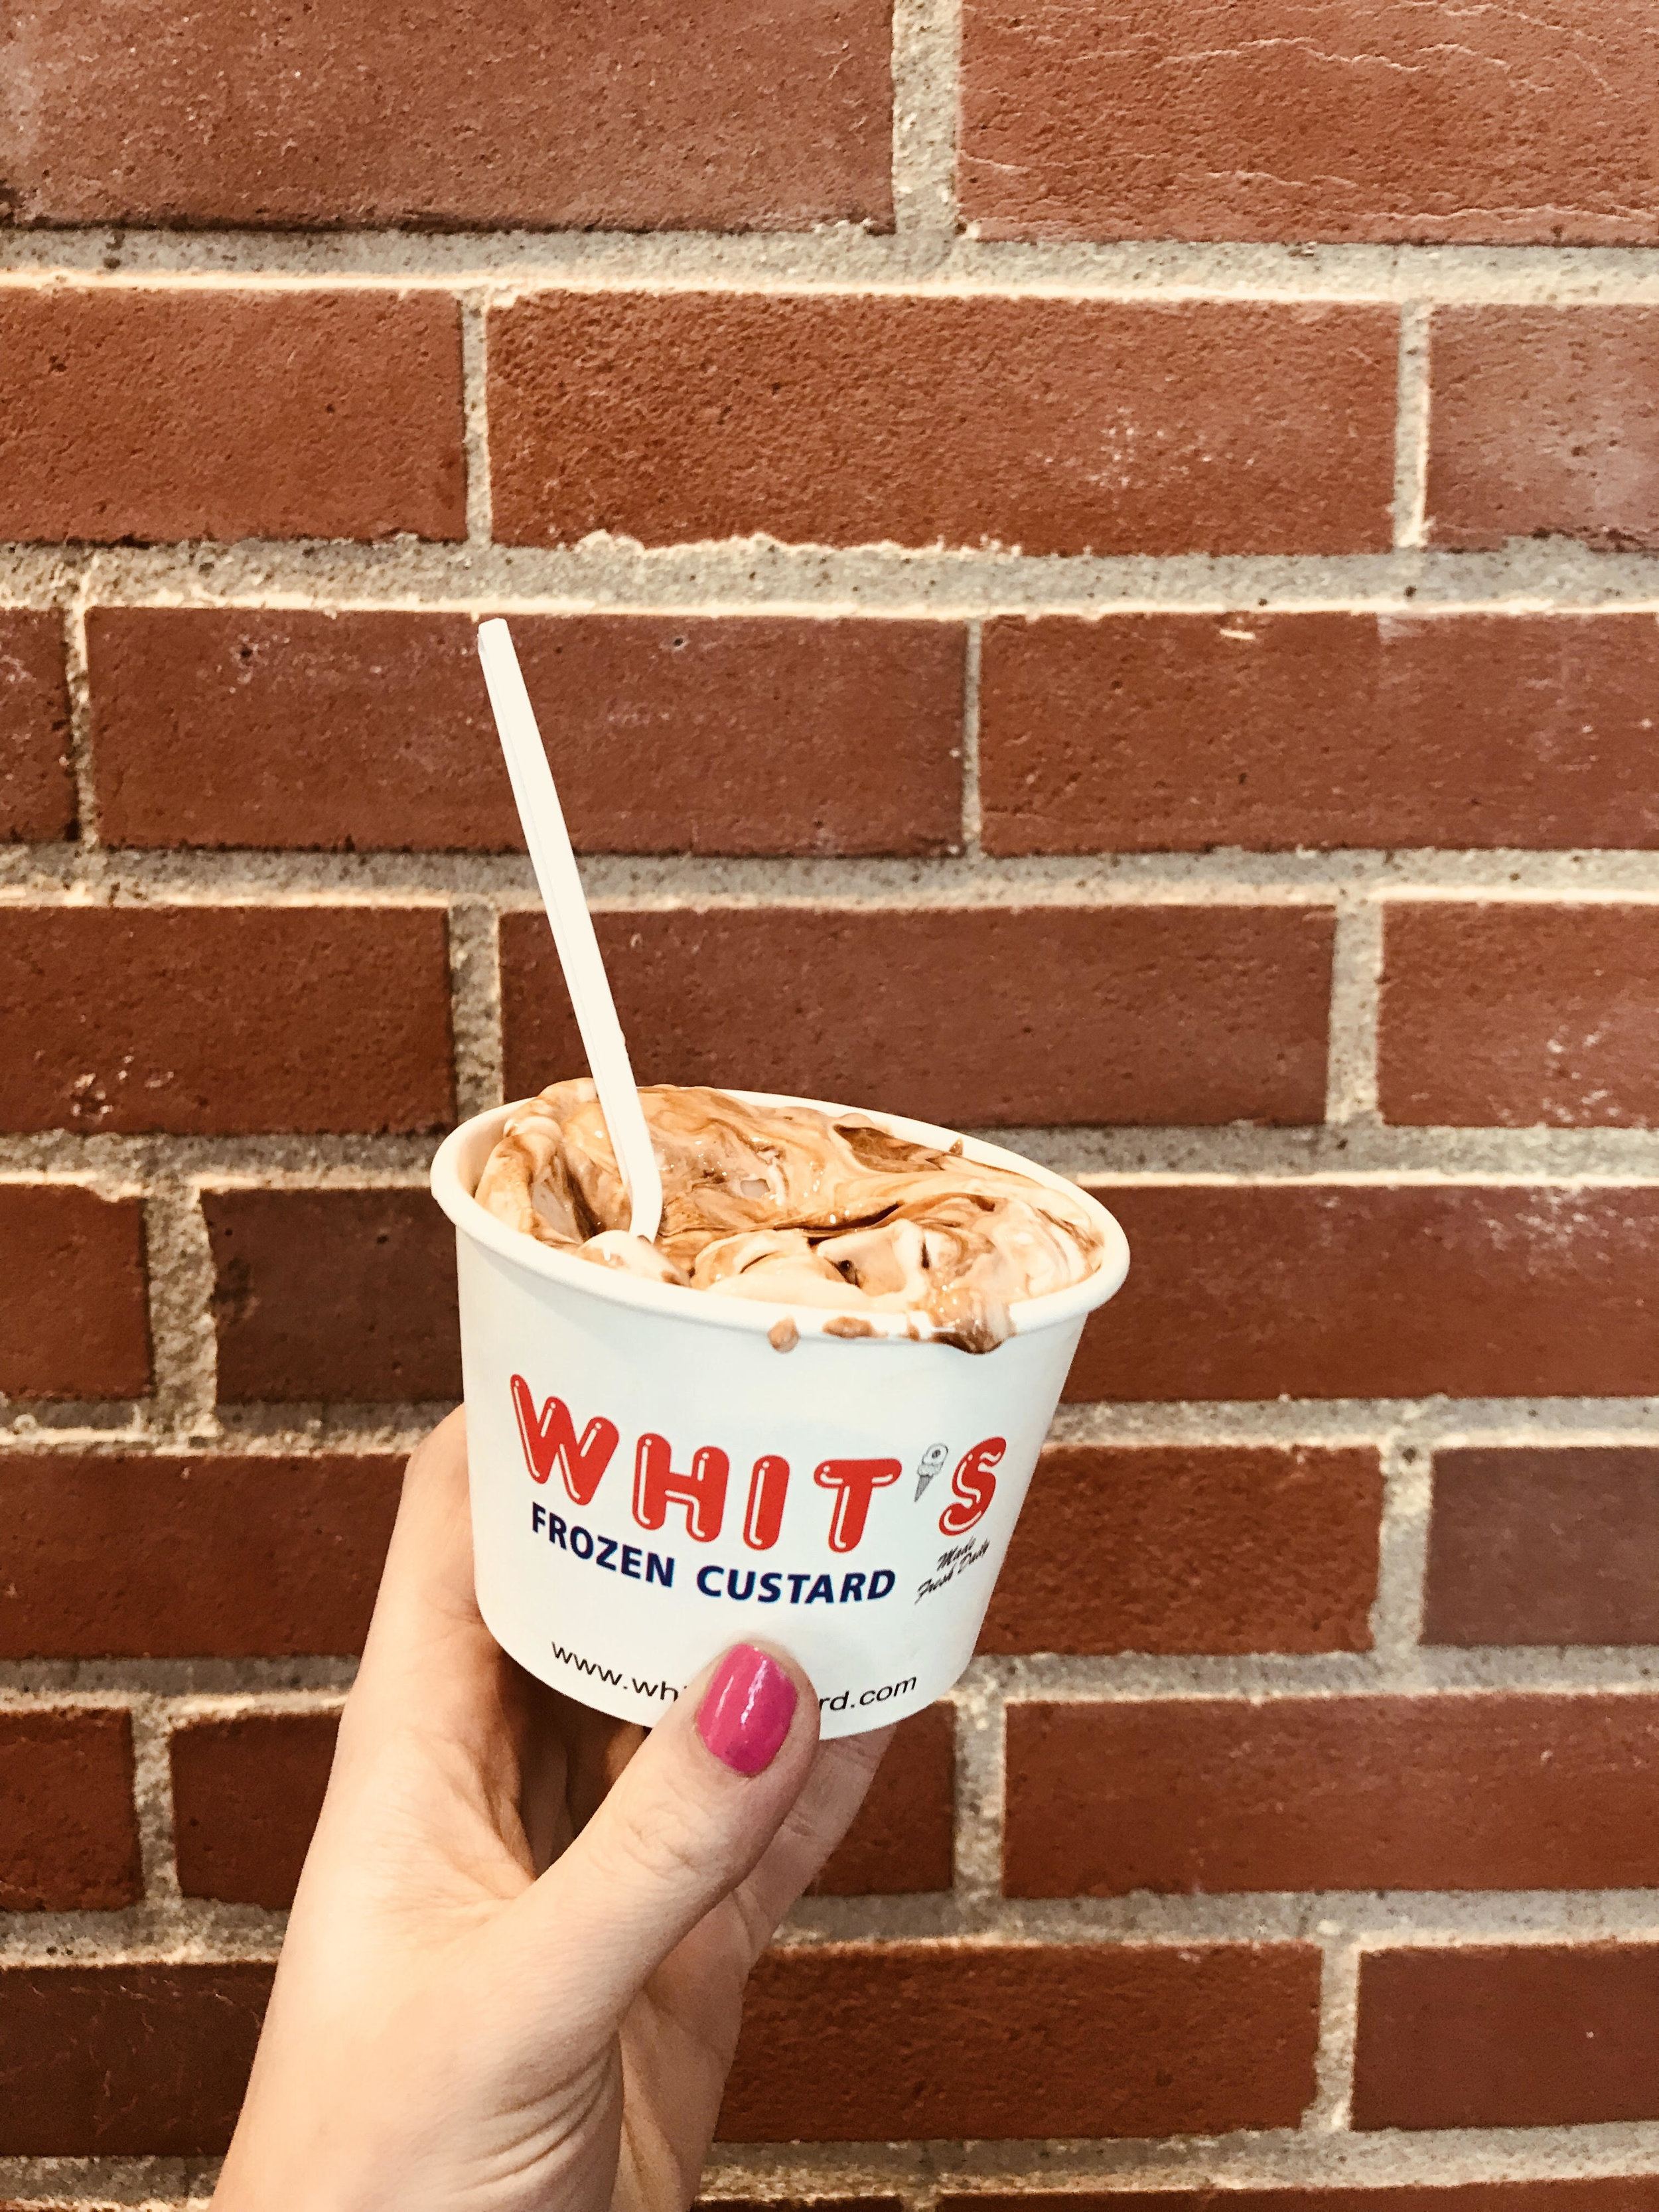 2. Dessert that's under $3. - One thing I love about my hometown is you can get dessert for under $3. Buckeye frozen custard from my favorite dessert spot - Whit's!